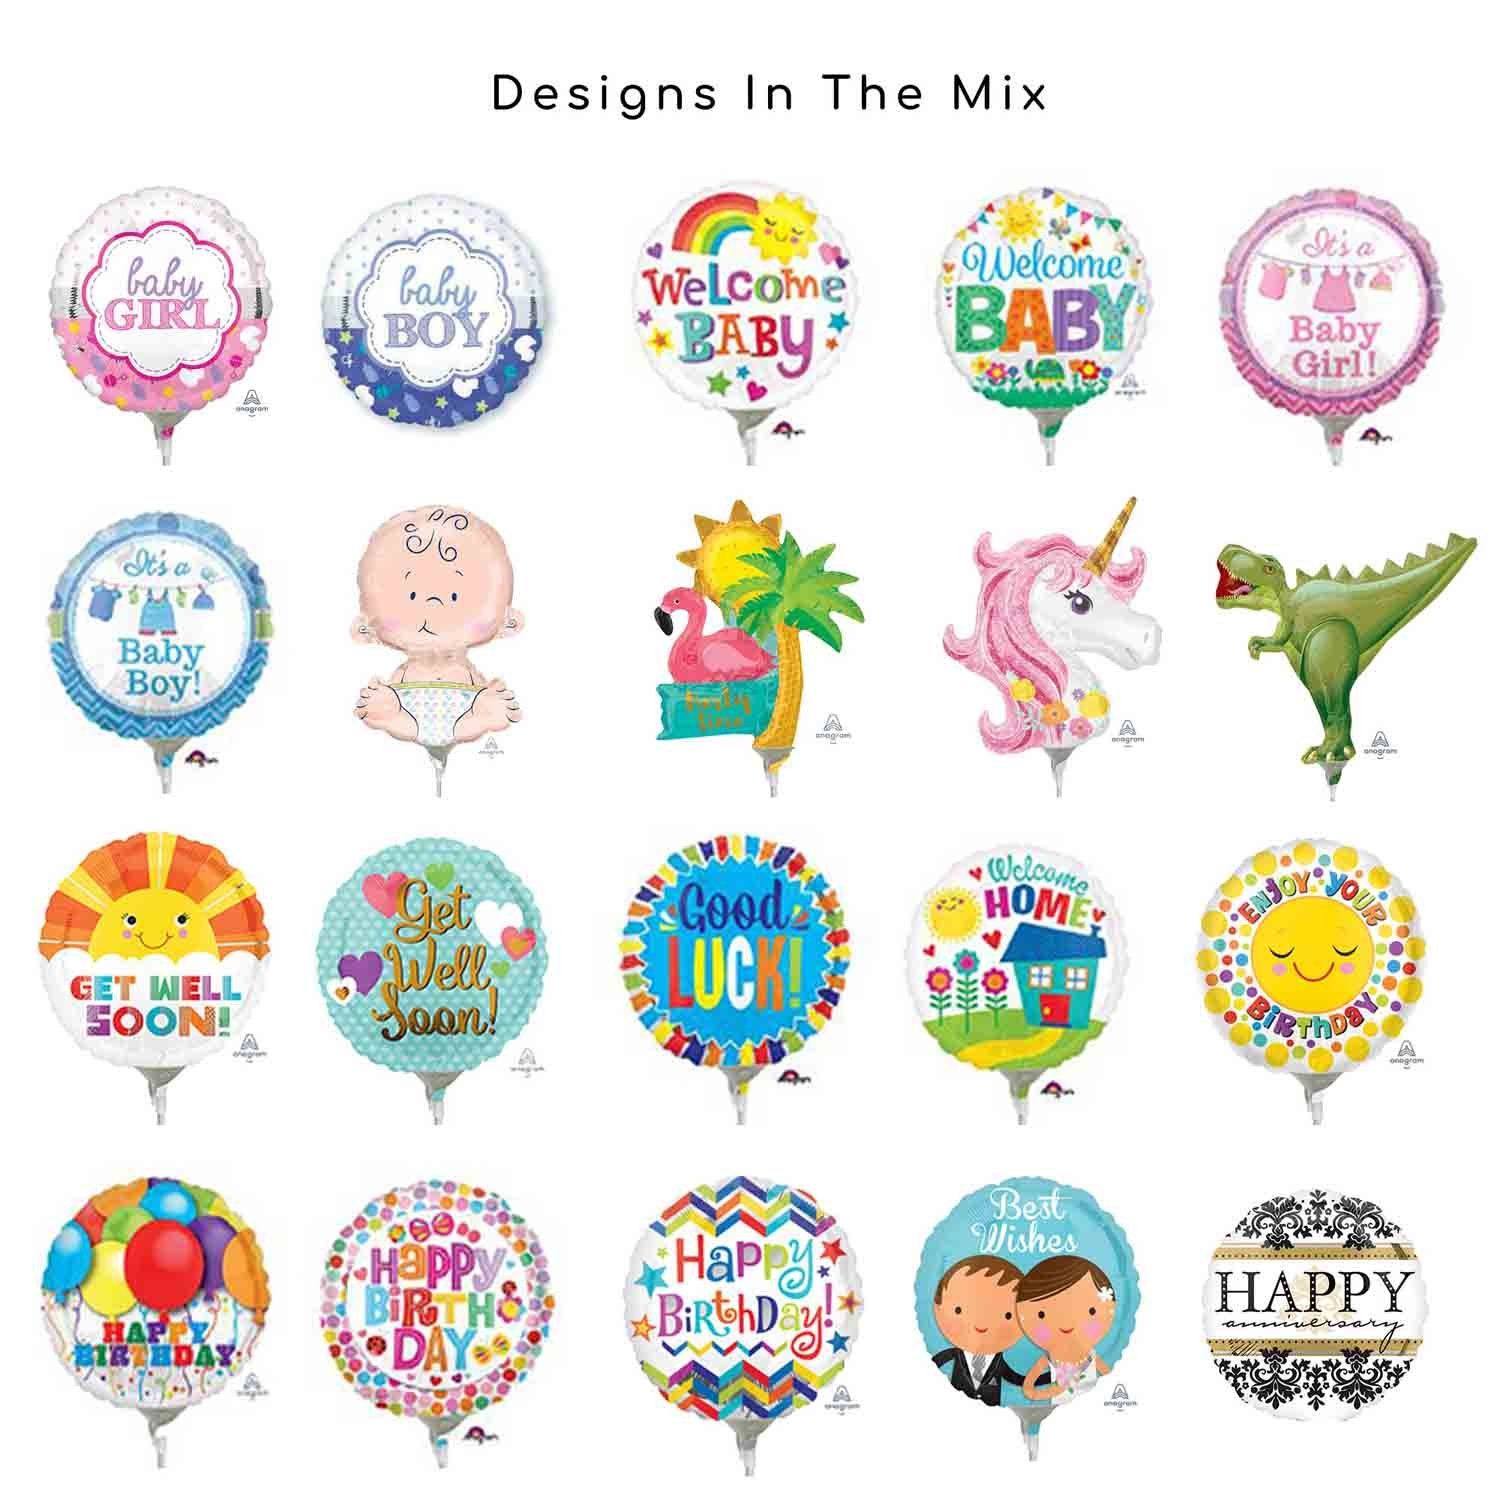 9in/23cm & Mini Shape - Baby, Birthday, Messages Foil Balloon Mix Contains 20 Balloons, pre-inflated with Sticks & Cups